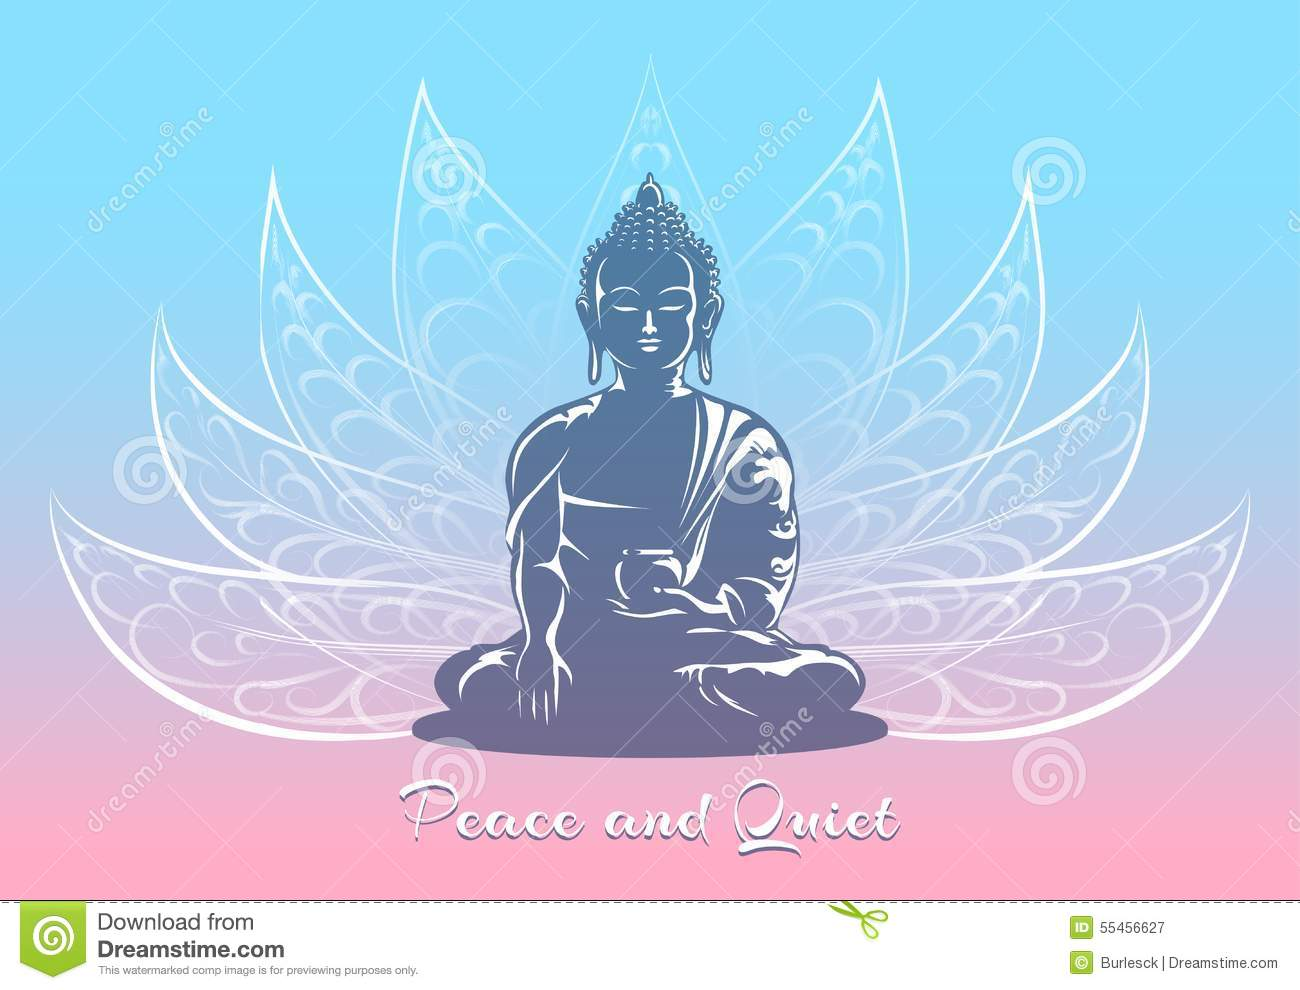 buddhism meditation as a balance Download 100,062 meditation background stock photos for free or amazingly spa treatment concept japanese zen garden stones tao buddhism conceptual for balance harmony relaxation and meditation zen stones on beach buddhism, meditation background with empty space for text zen, yoga and.